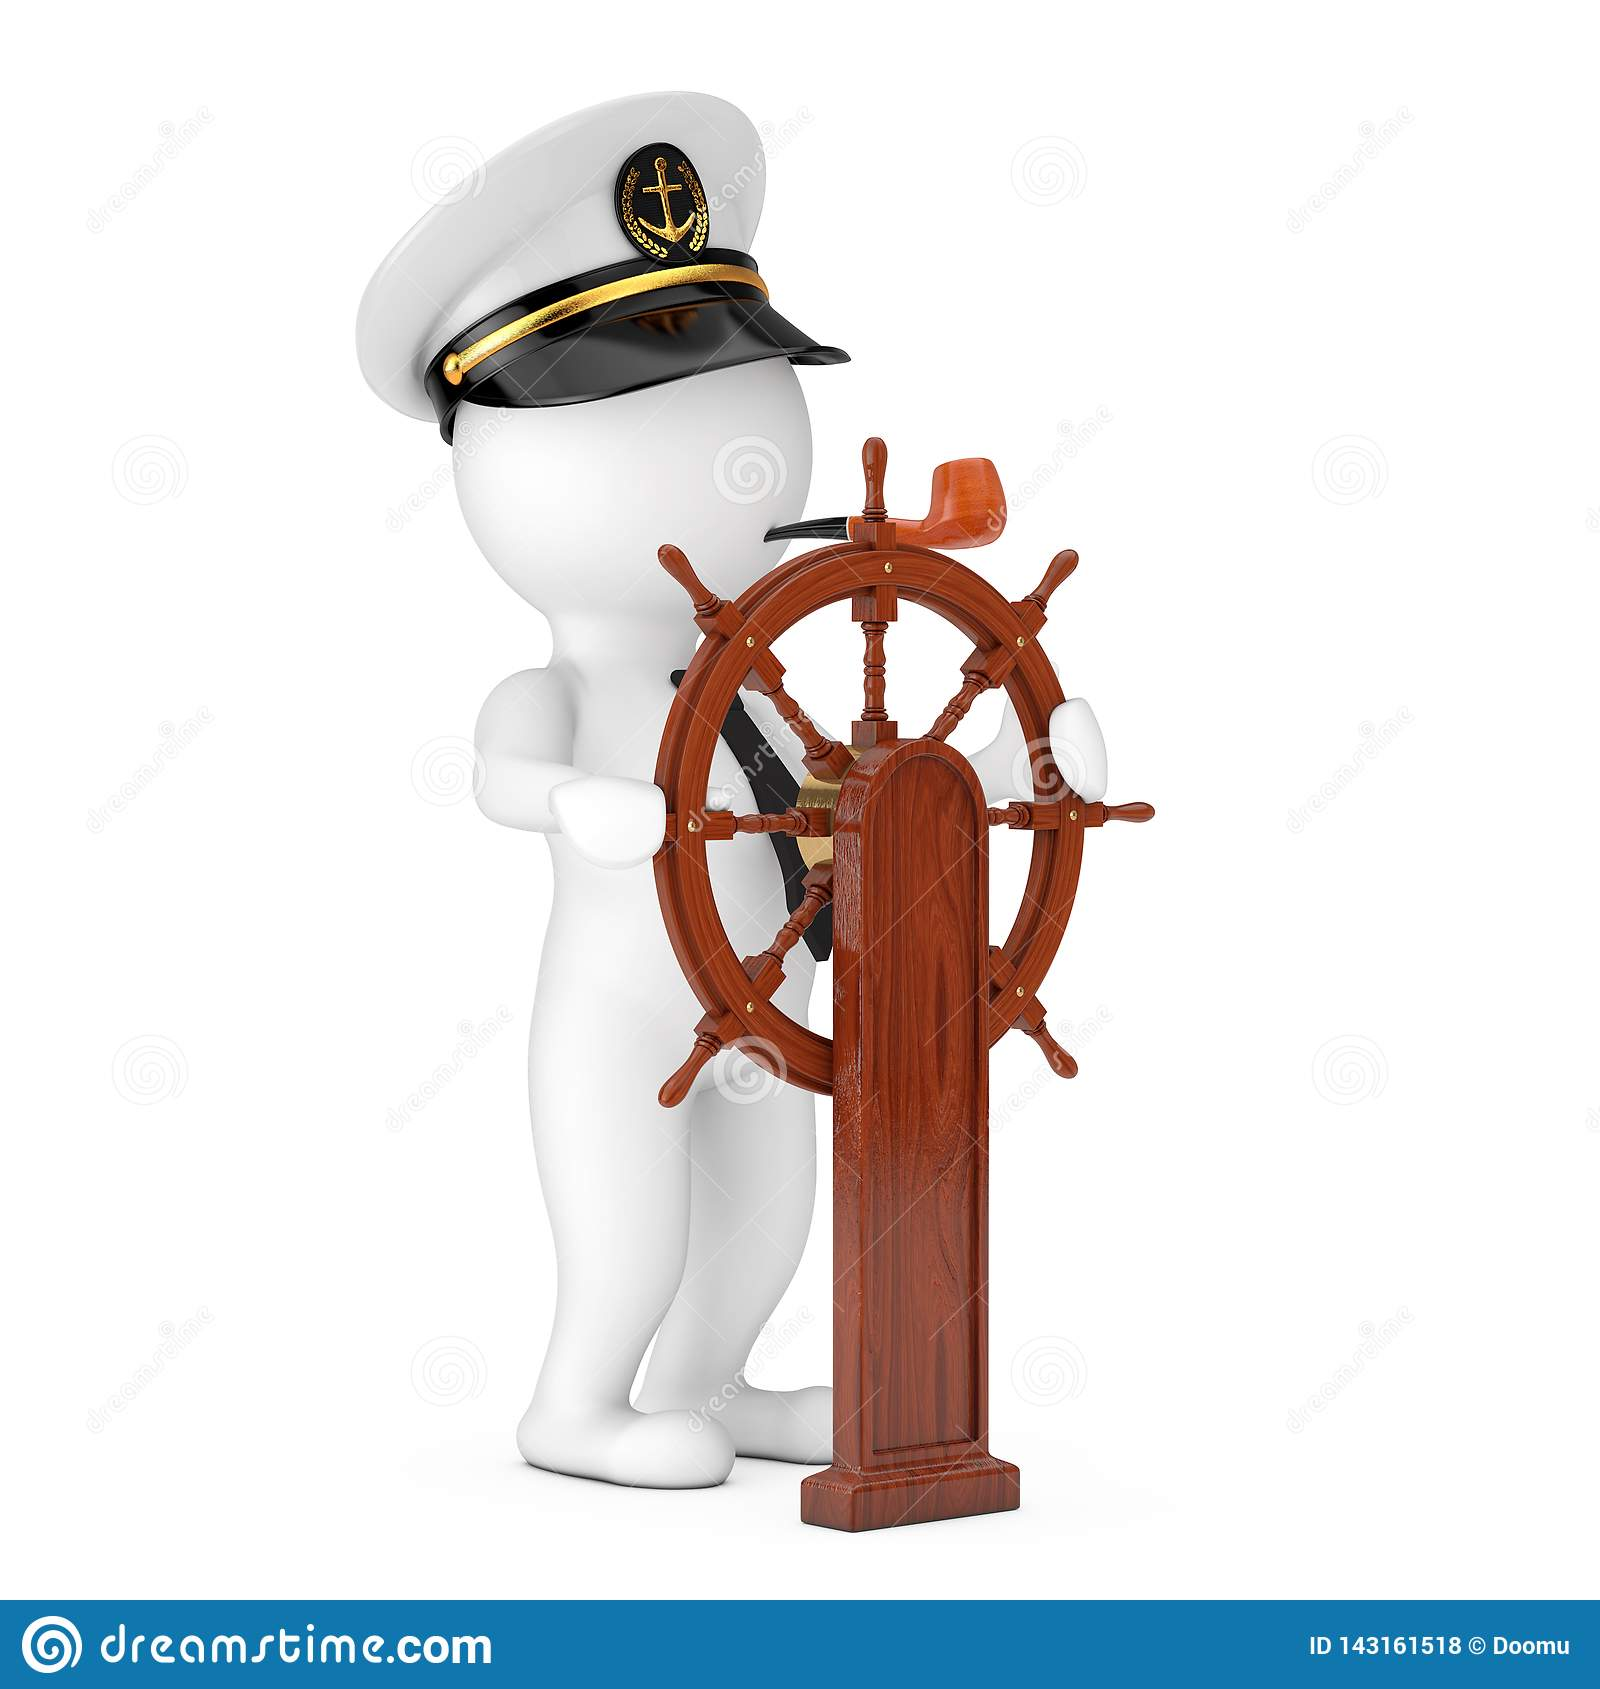 Captain Cartoon Character In Navy Ship Captain Hat With Smoking Pipenear Vintage Wooden Ship Steering Wheel With Stand 3d Stock Illustration Illustration Of Helmsman Helm 143161518